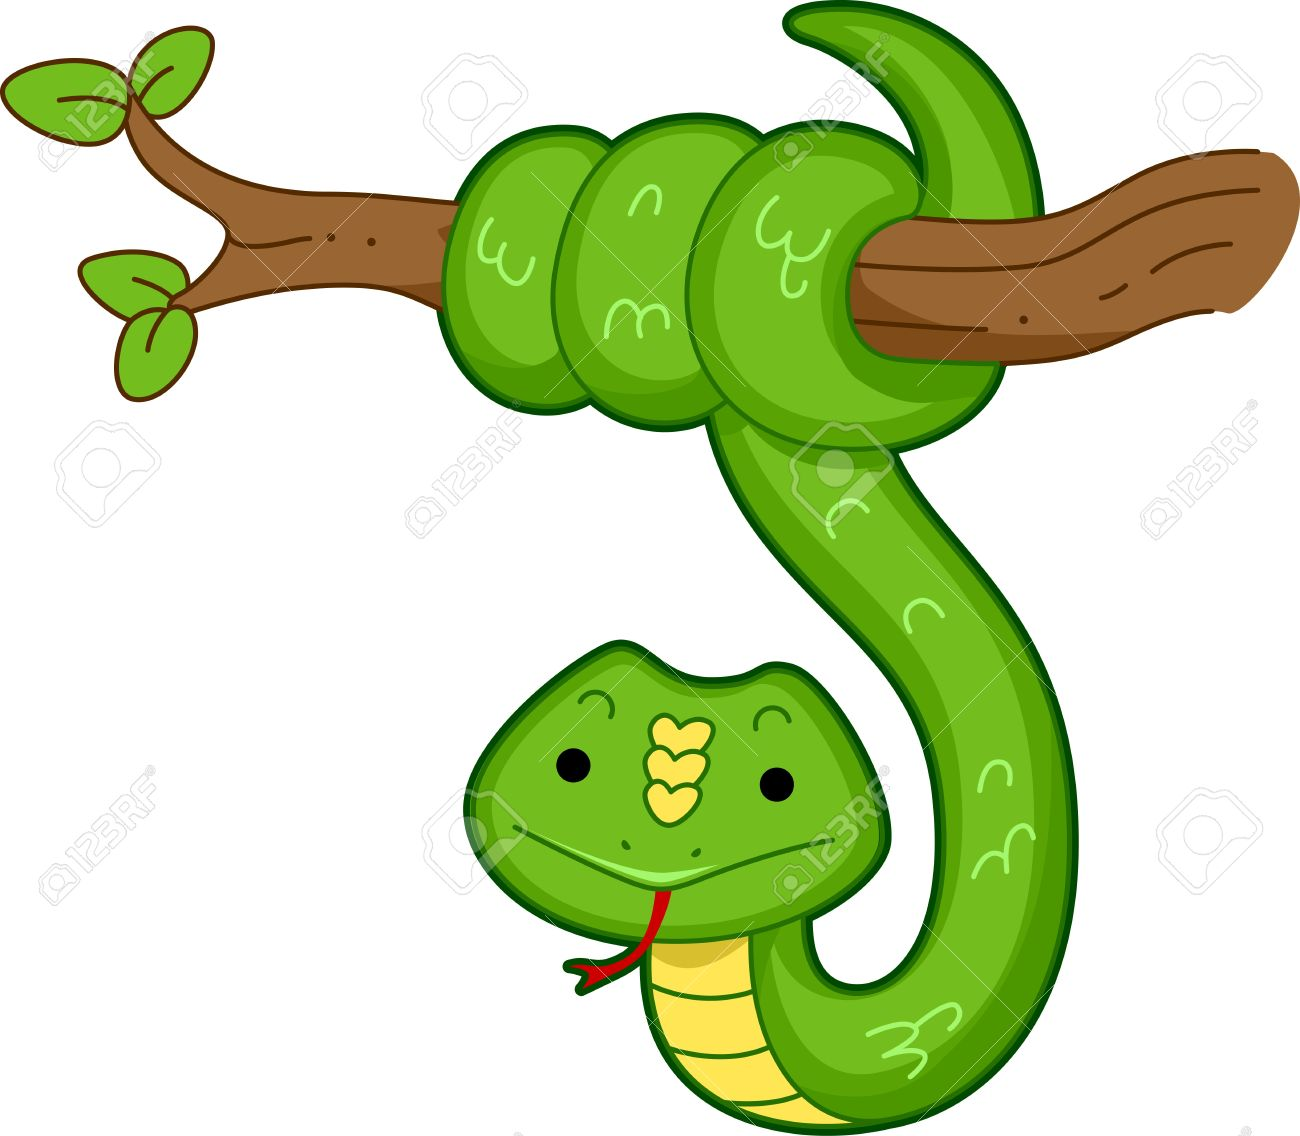 1300x1136 Rainforest Snake Clipart amp Rainforest Snake Clip Art Images